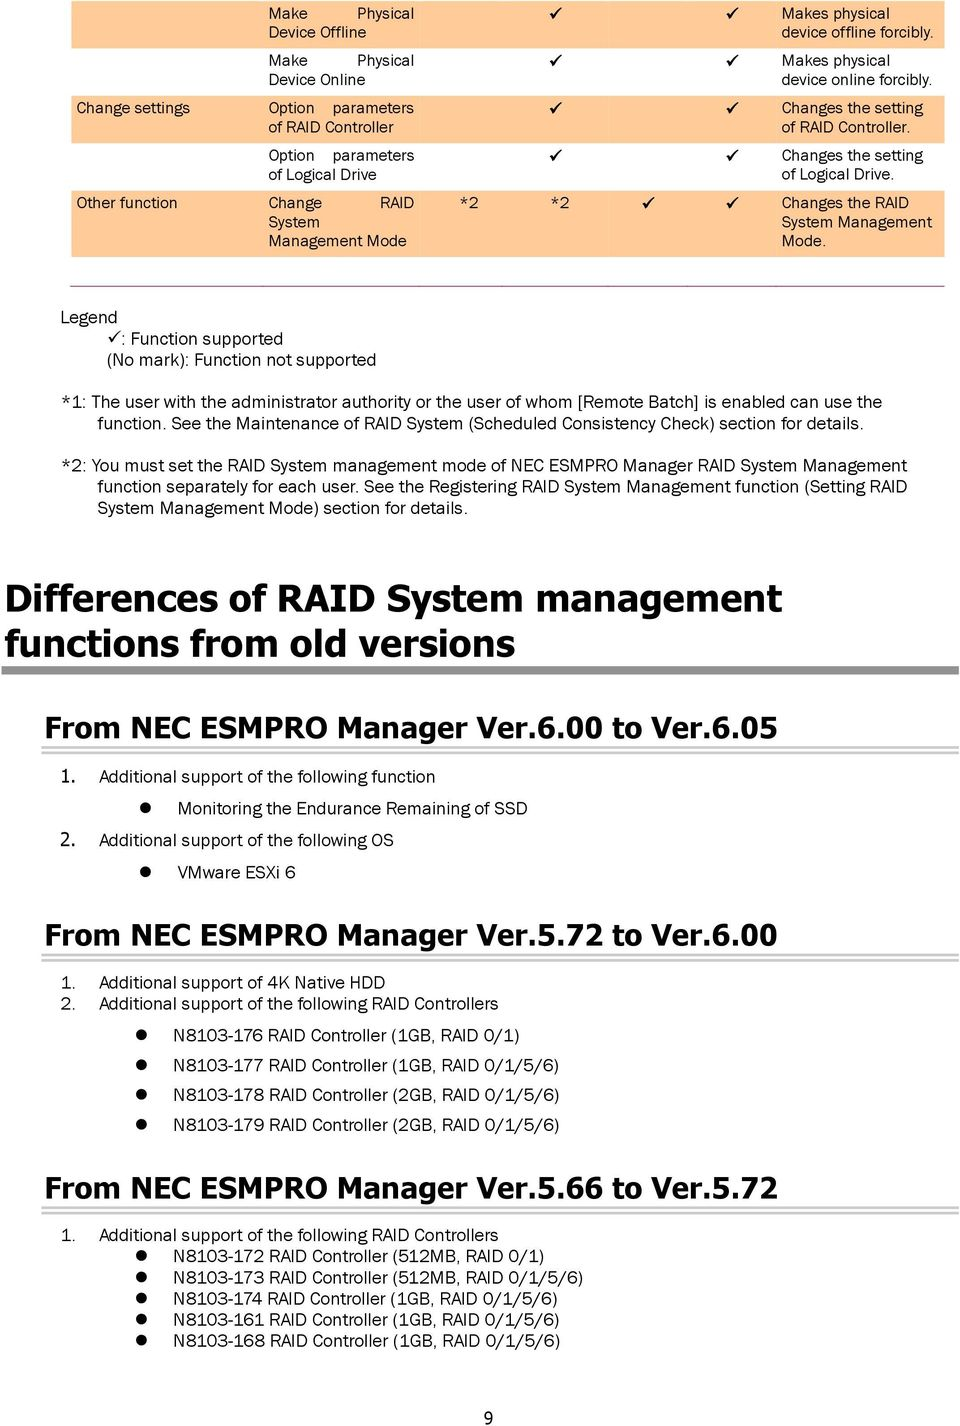 *2 *2 Changes the RAID System Management Mode.